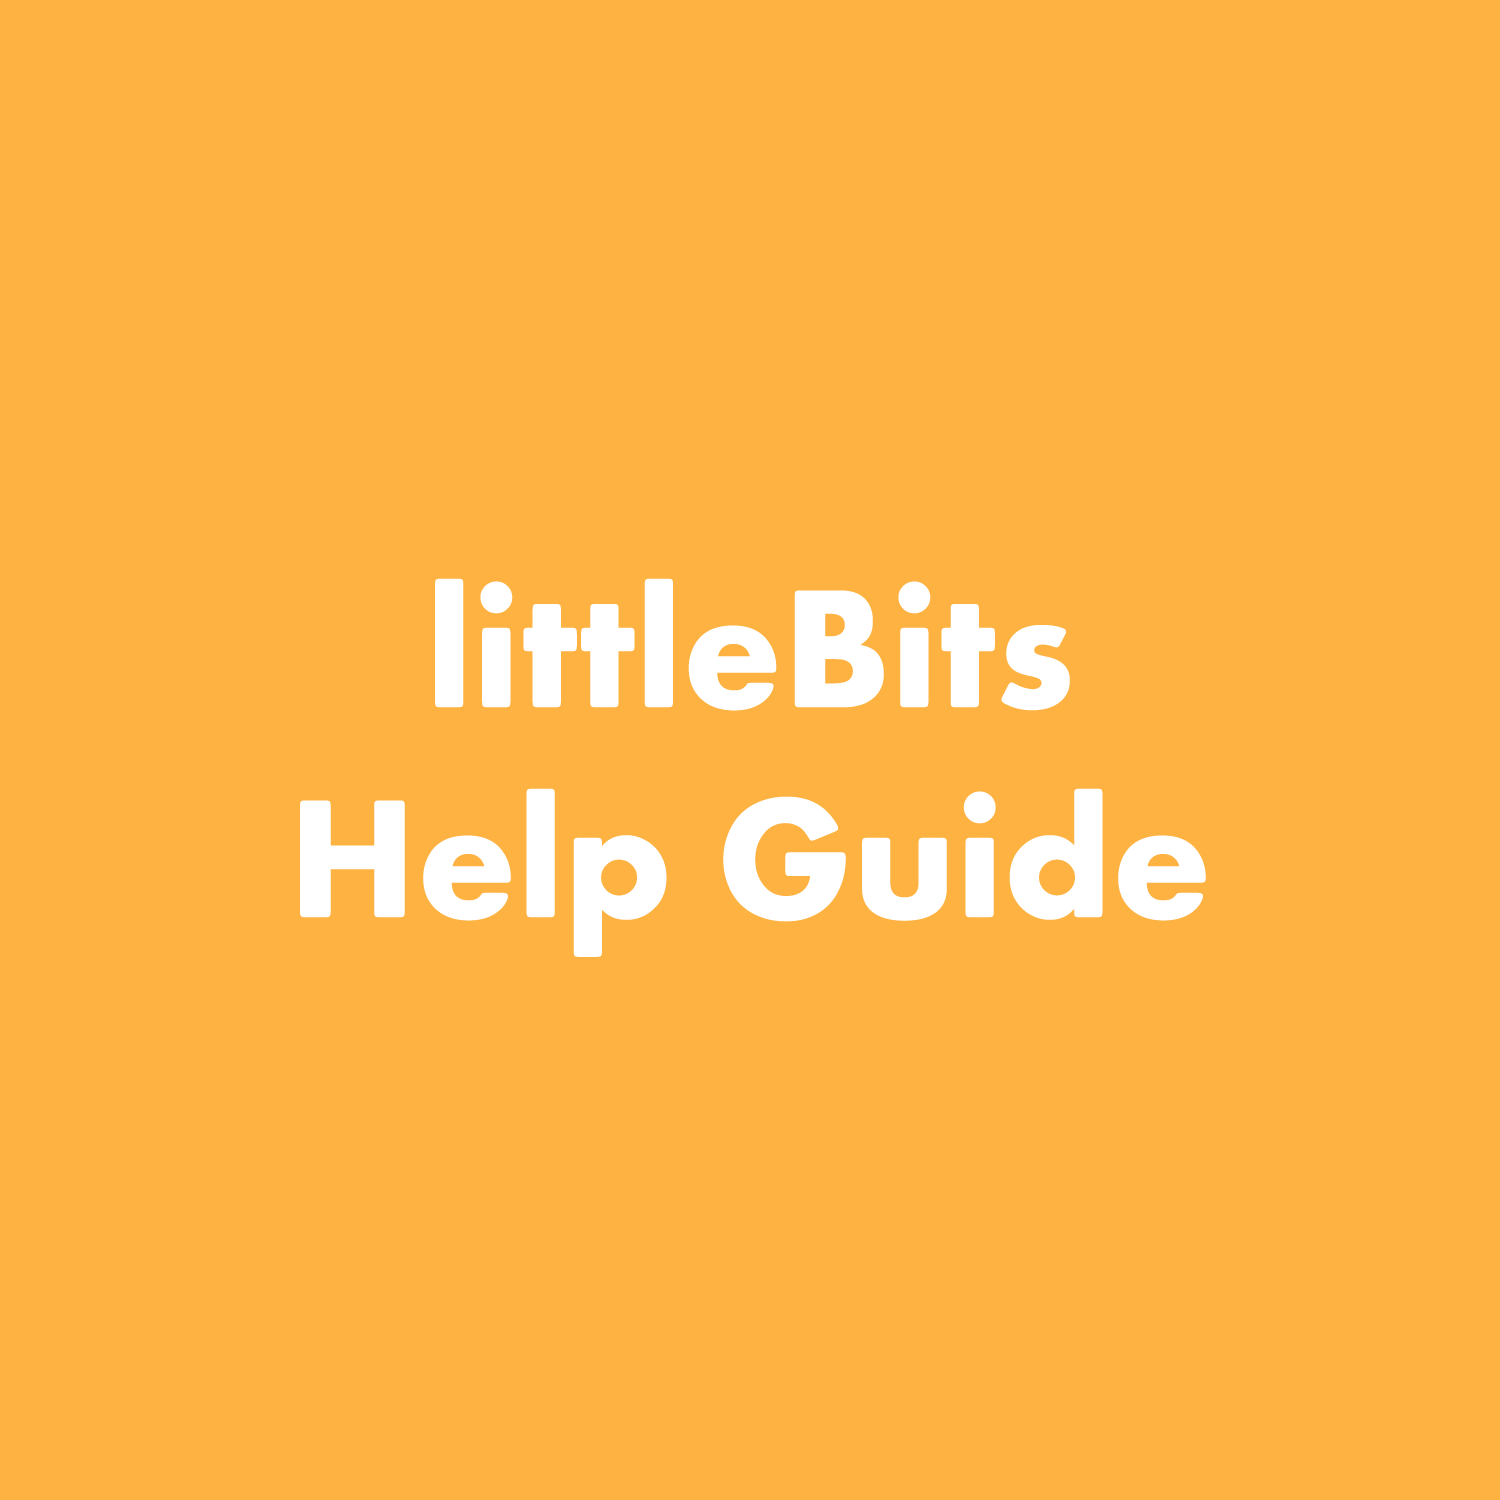 PDF: littleBits Troubleshooting